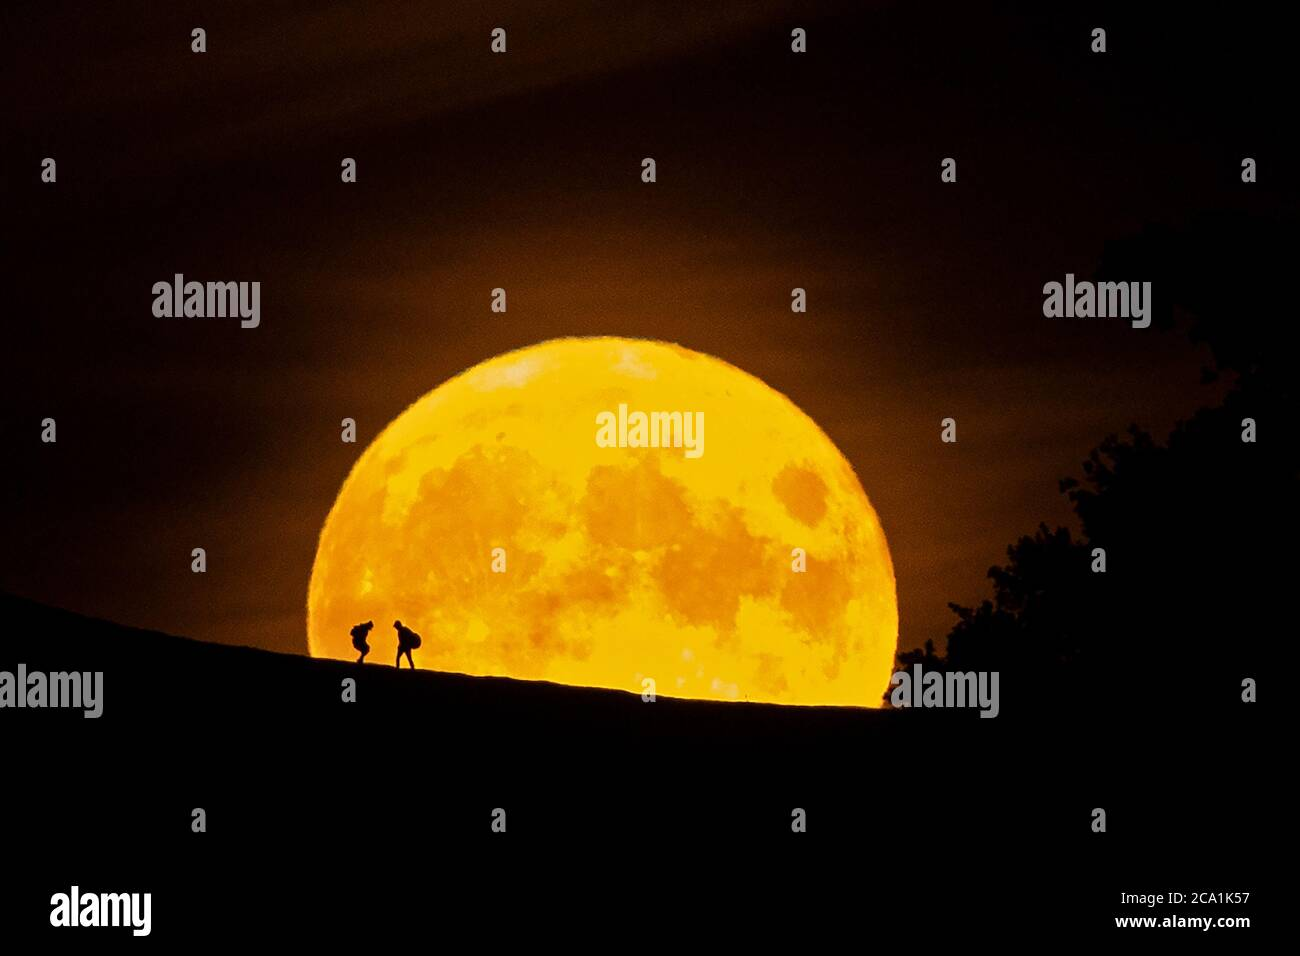 GLASTONBURY, UK. 03rd Aug, 2020. Hikers stop to admire the view of the full moon as it rises over Somerset (Photo by Mitchell Gunn/Espa-Images) Credit: European Sports Photo Agency/Alamy Live News Stock Photo